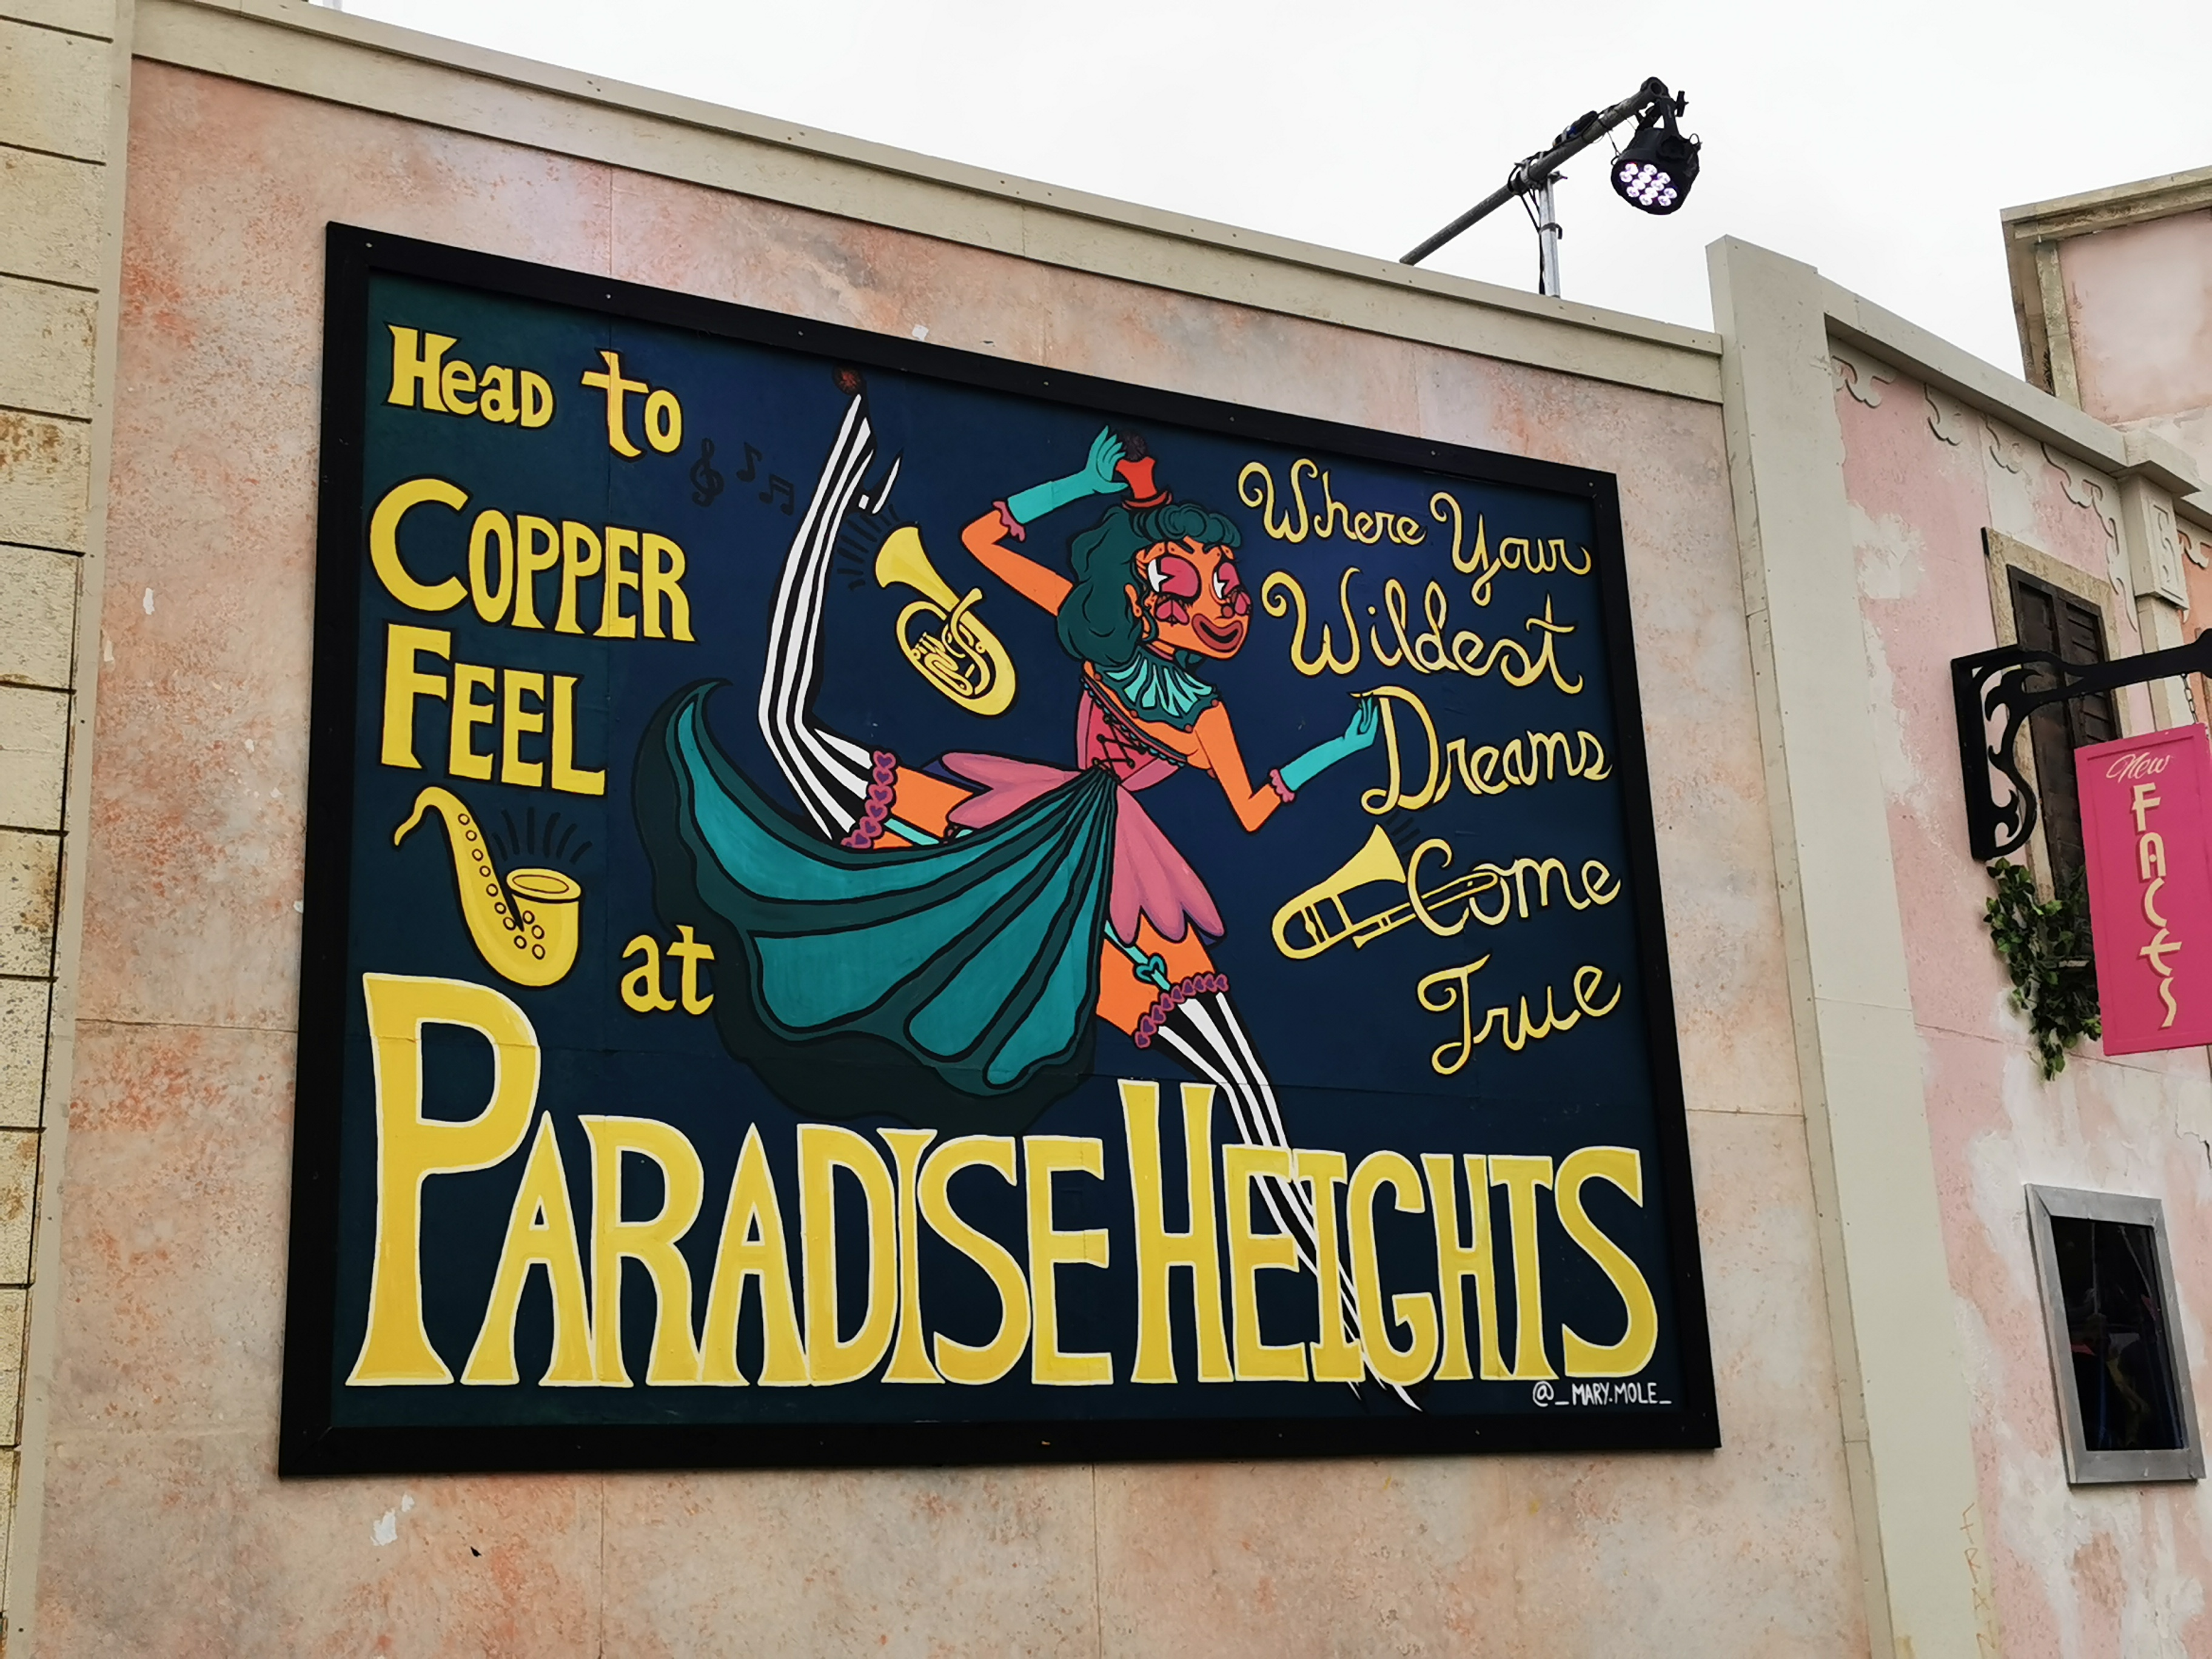 Paradise Heights Copper Feel sign Boomtown Fair